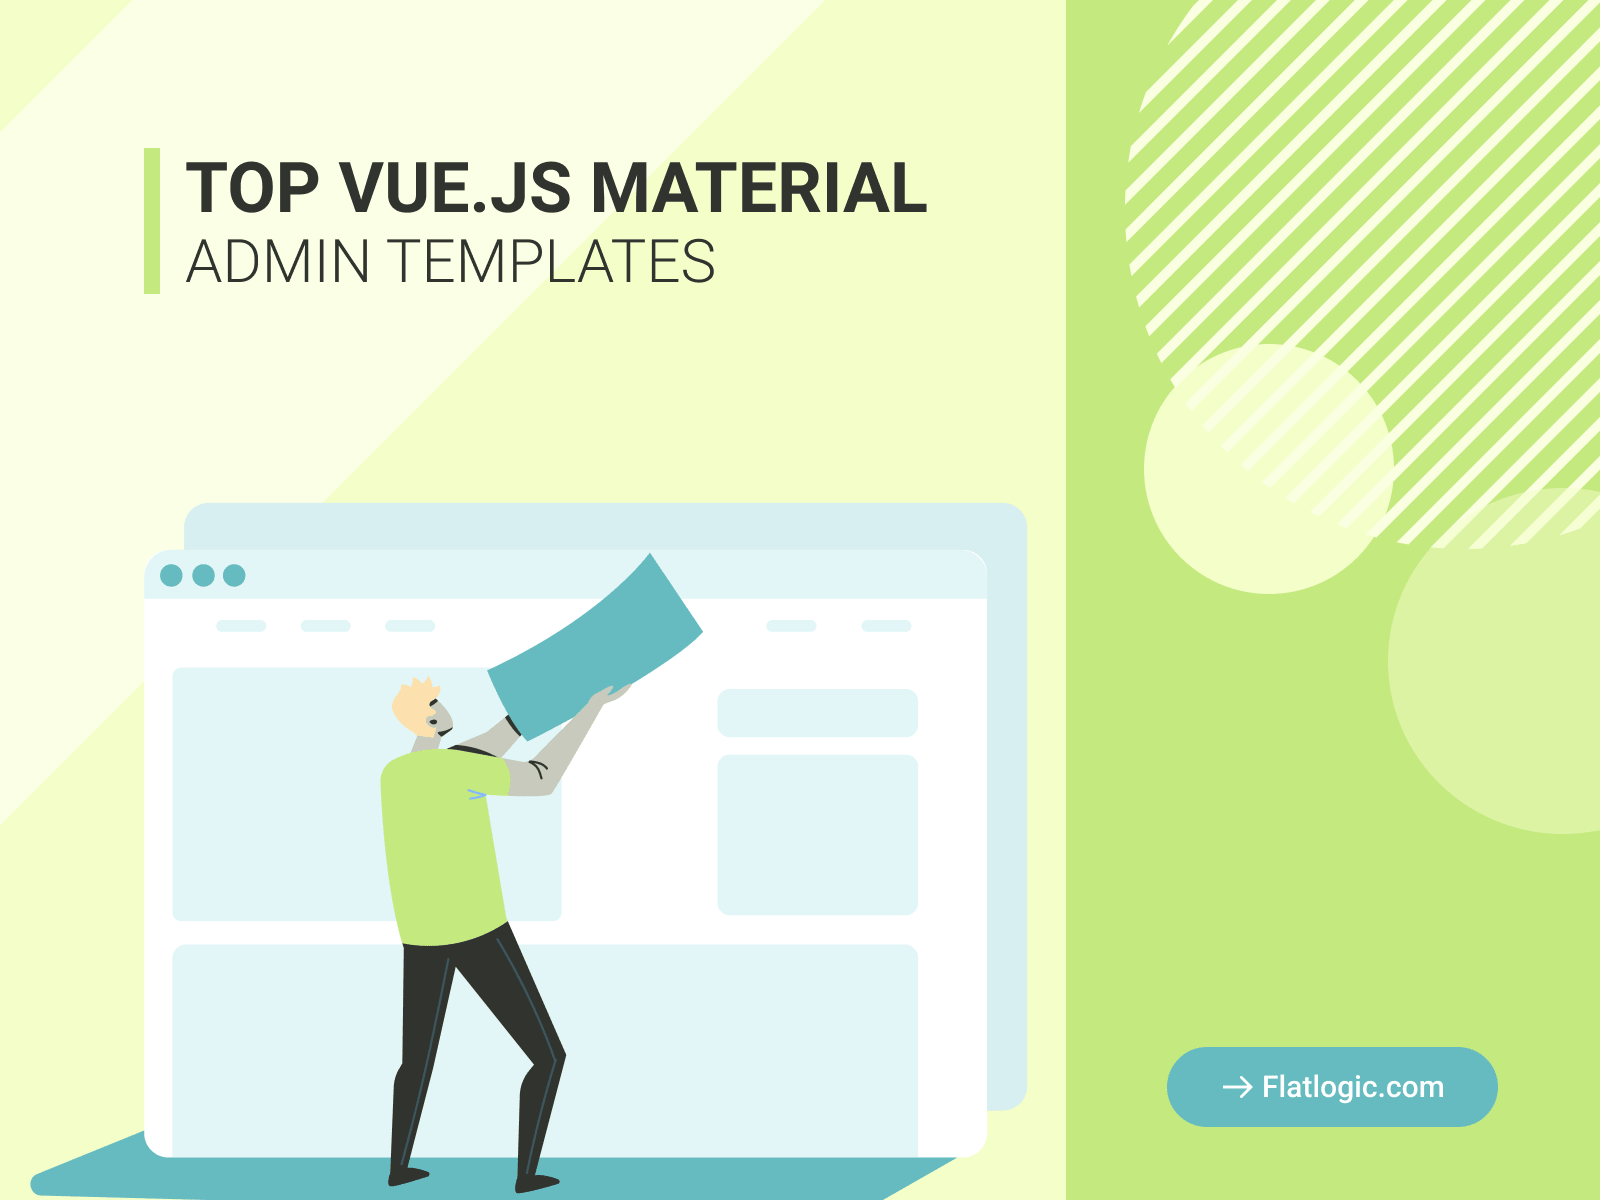 Top 7 Awesome Vue Material Admin Dashboard Templates Worth Your Attention - Flatlogic Blog